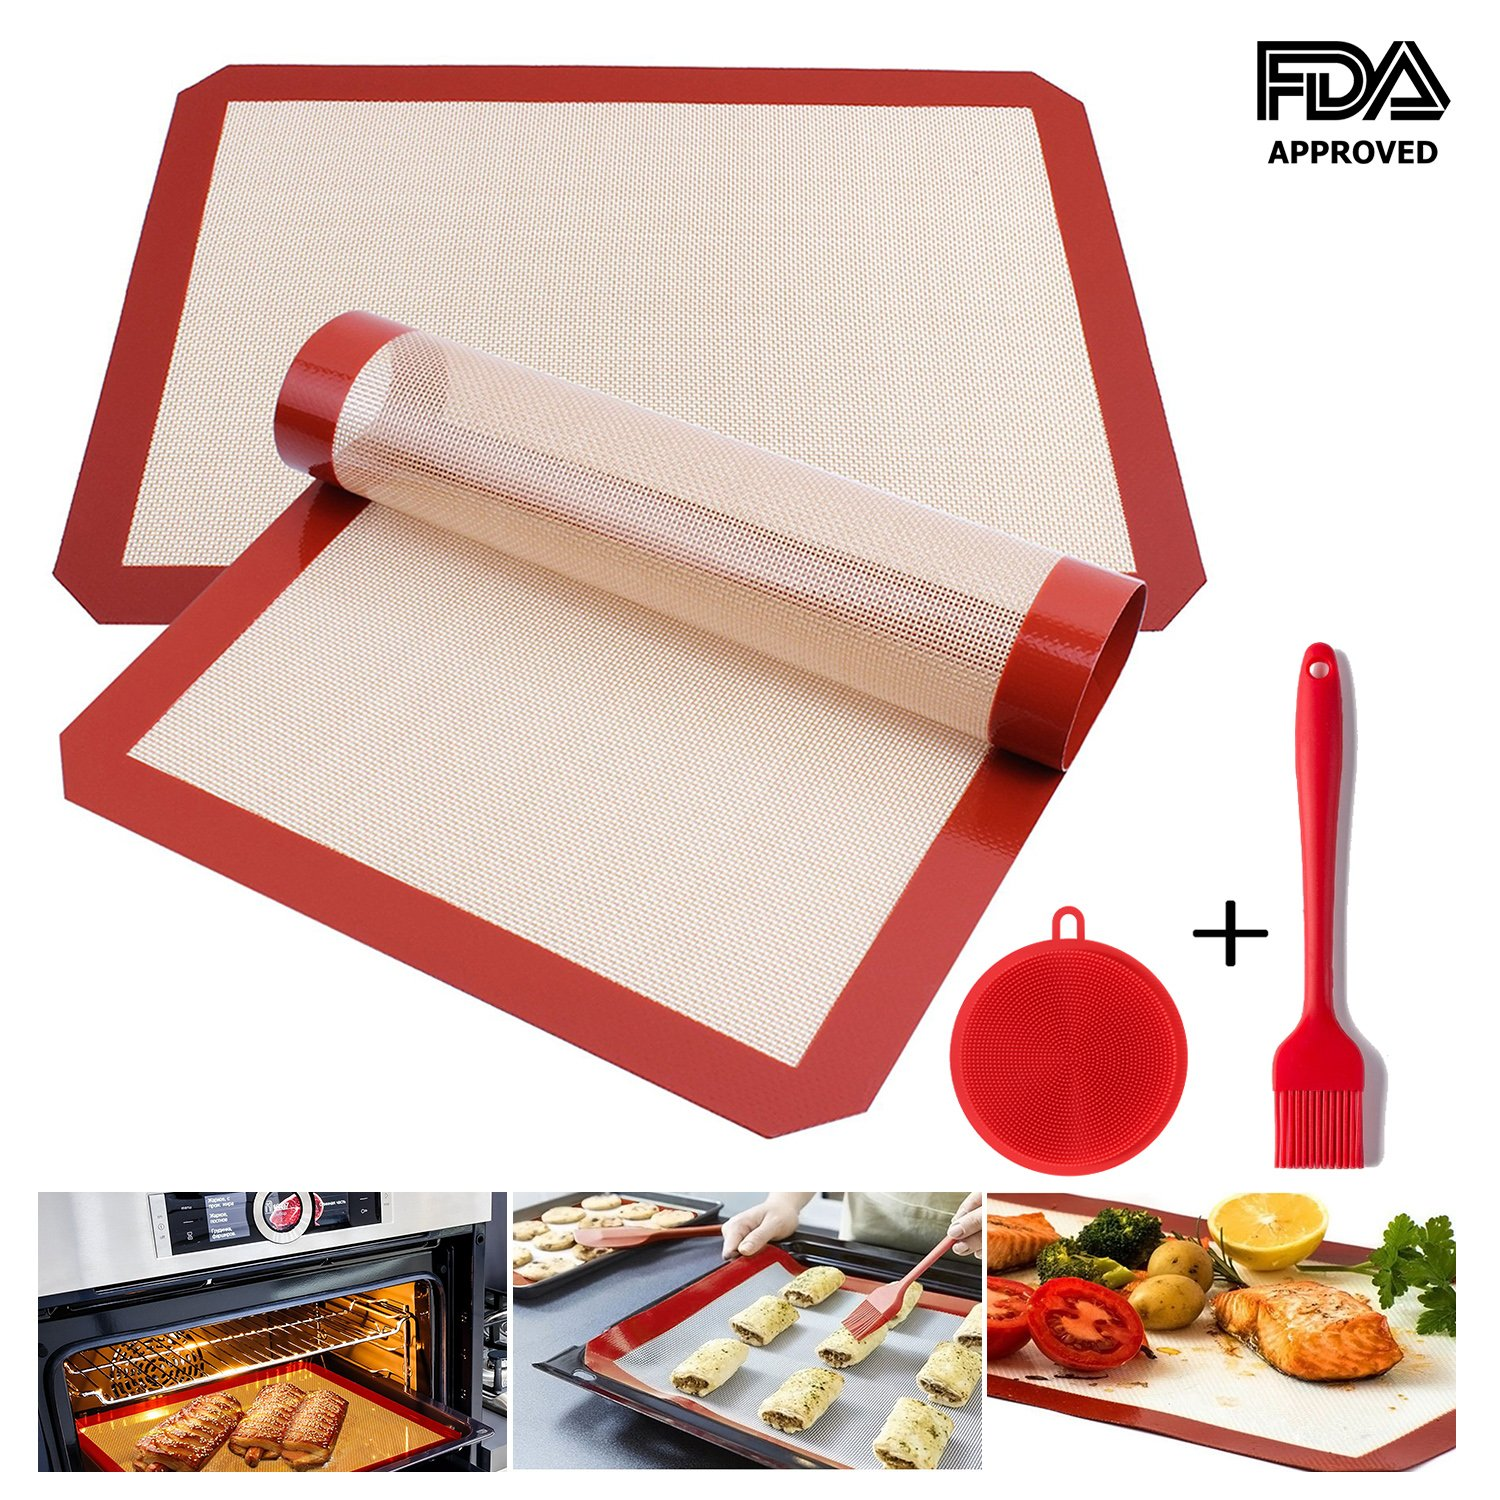 Ousum Non Stick Silicone Baking Mats Set of 4 Pack Heat Resistant 16 1/2'''' x 11 5/8 Professional FDA Approved Food Silicone